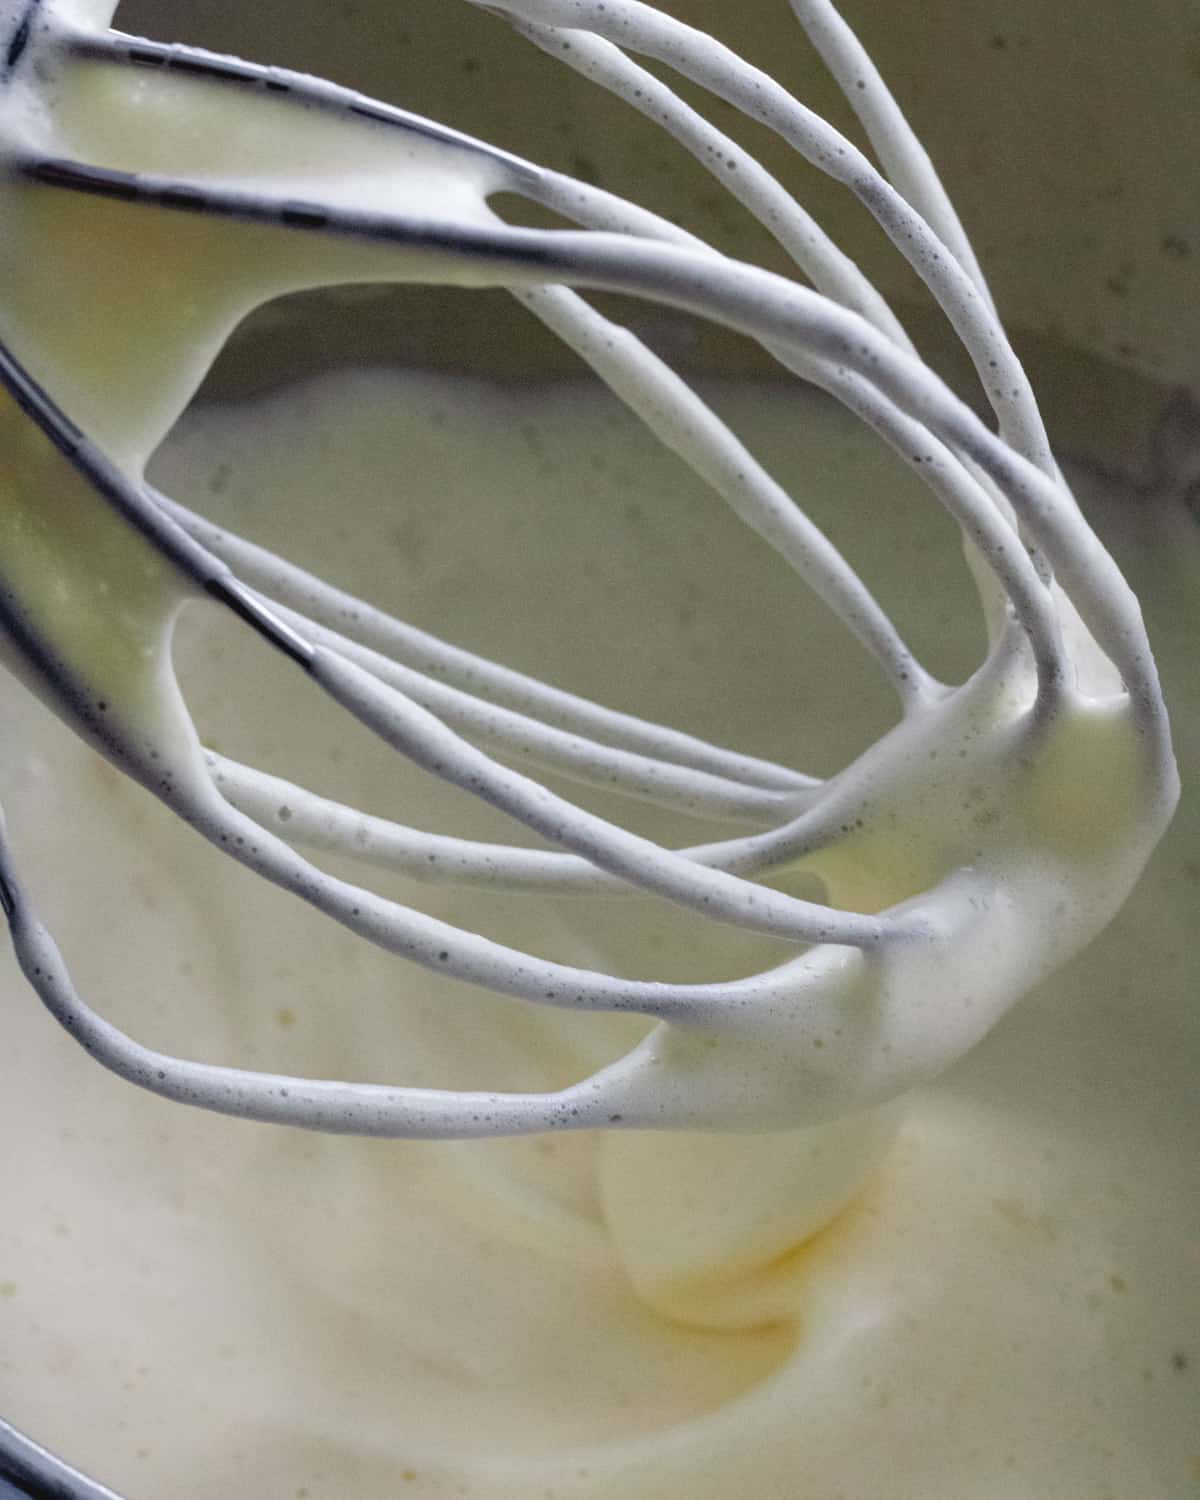 Whisk held above bowl of eggs. Eggs are fluffy and pale yellow.